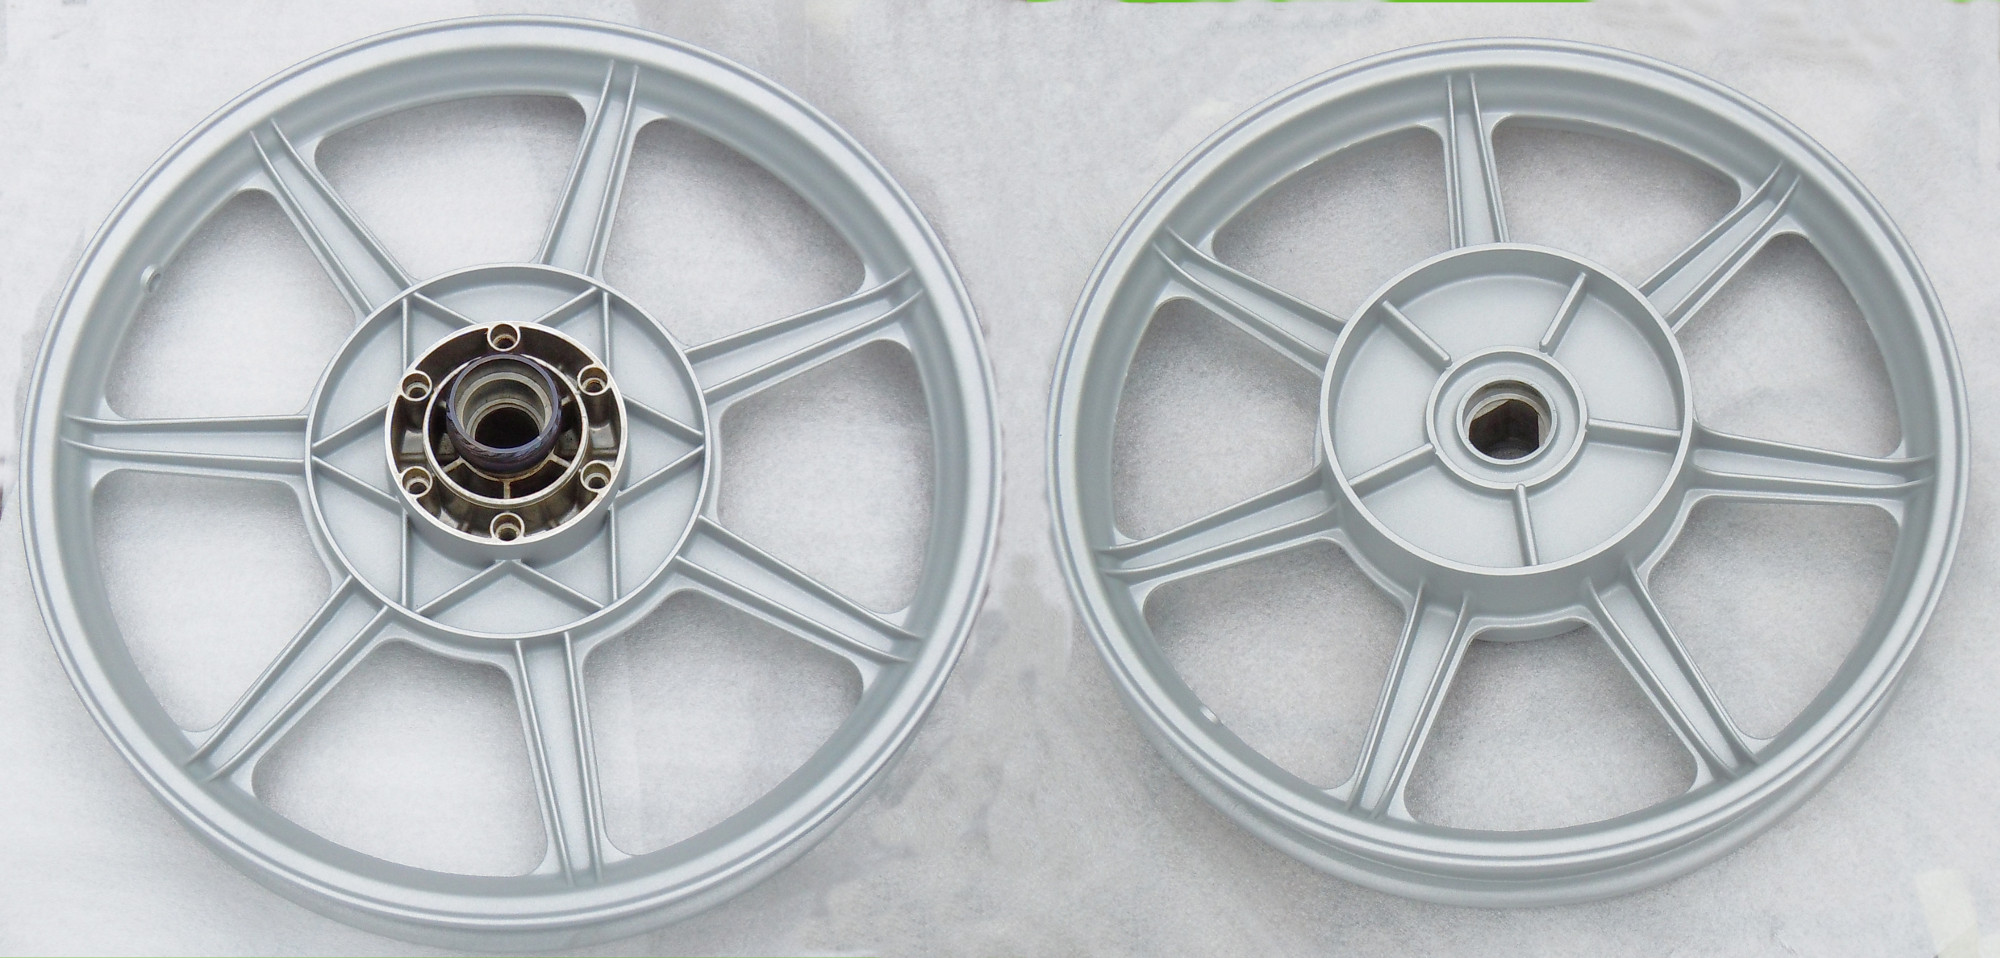 Wheels - Mercury Silver with a satin finish